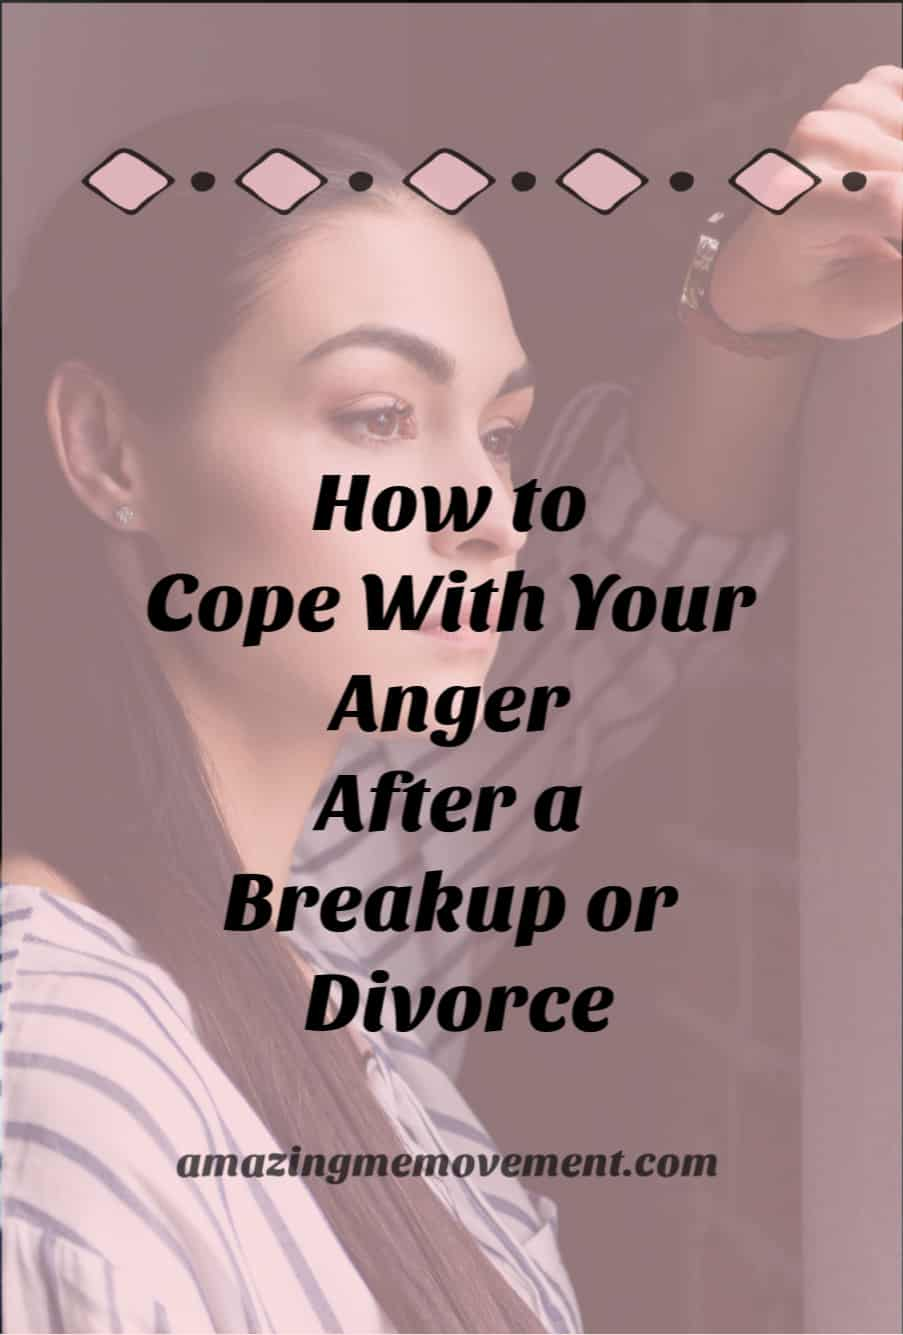 how to deal with anger problems after a divorce